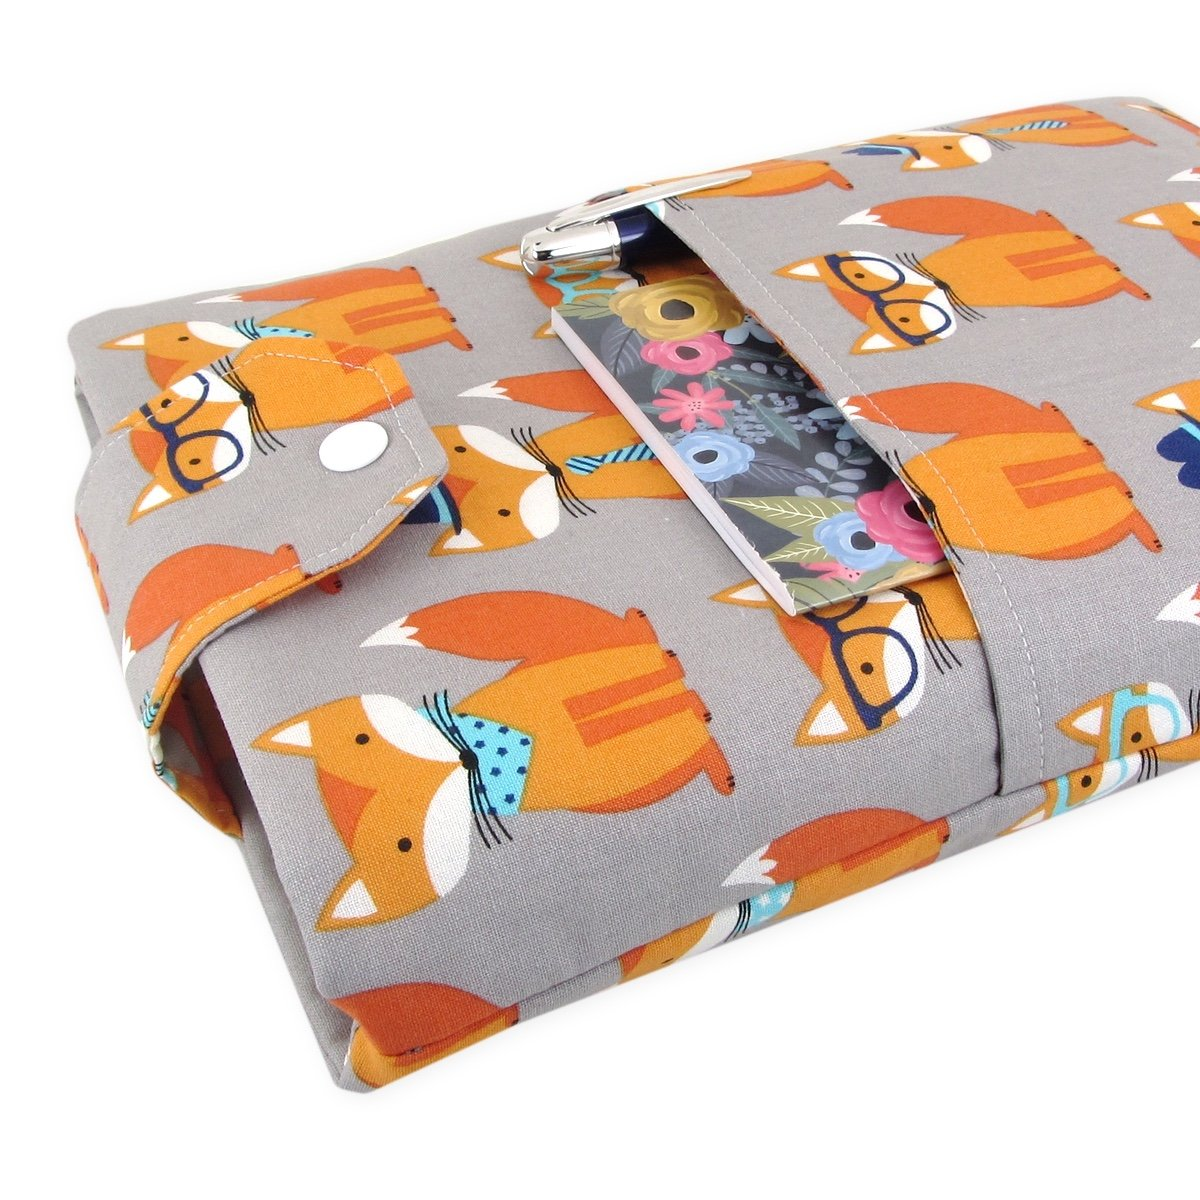 Handmade Fabric Book Sleeve - Perfect For Hardbacks Or Large Paperbacks - Padded, Cute Fox Print - Great Book Lover Gift